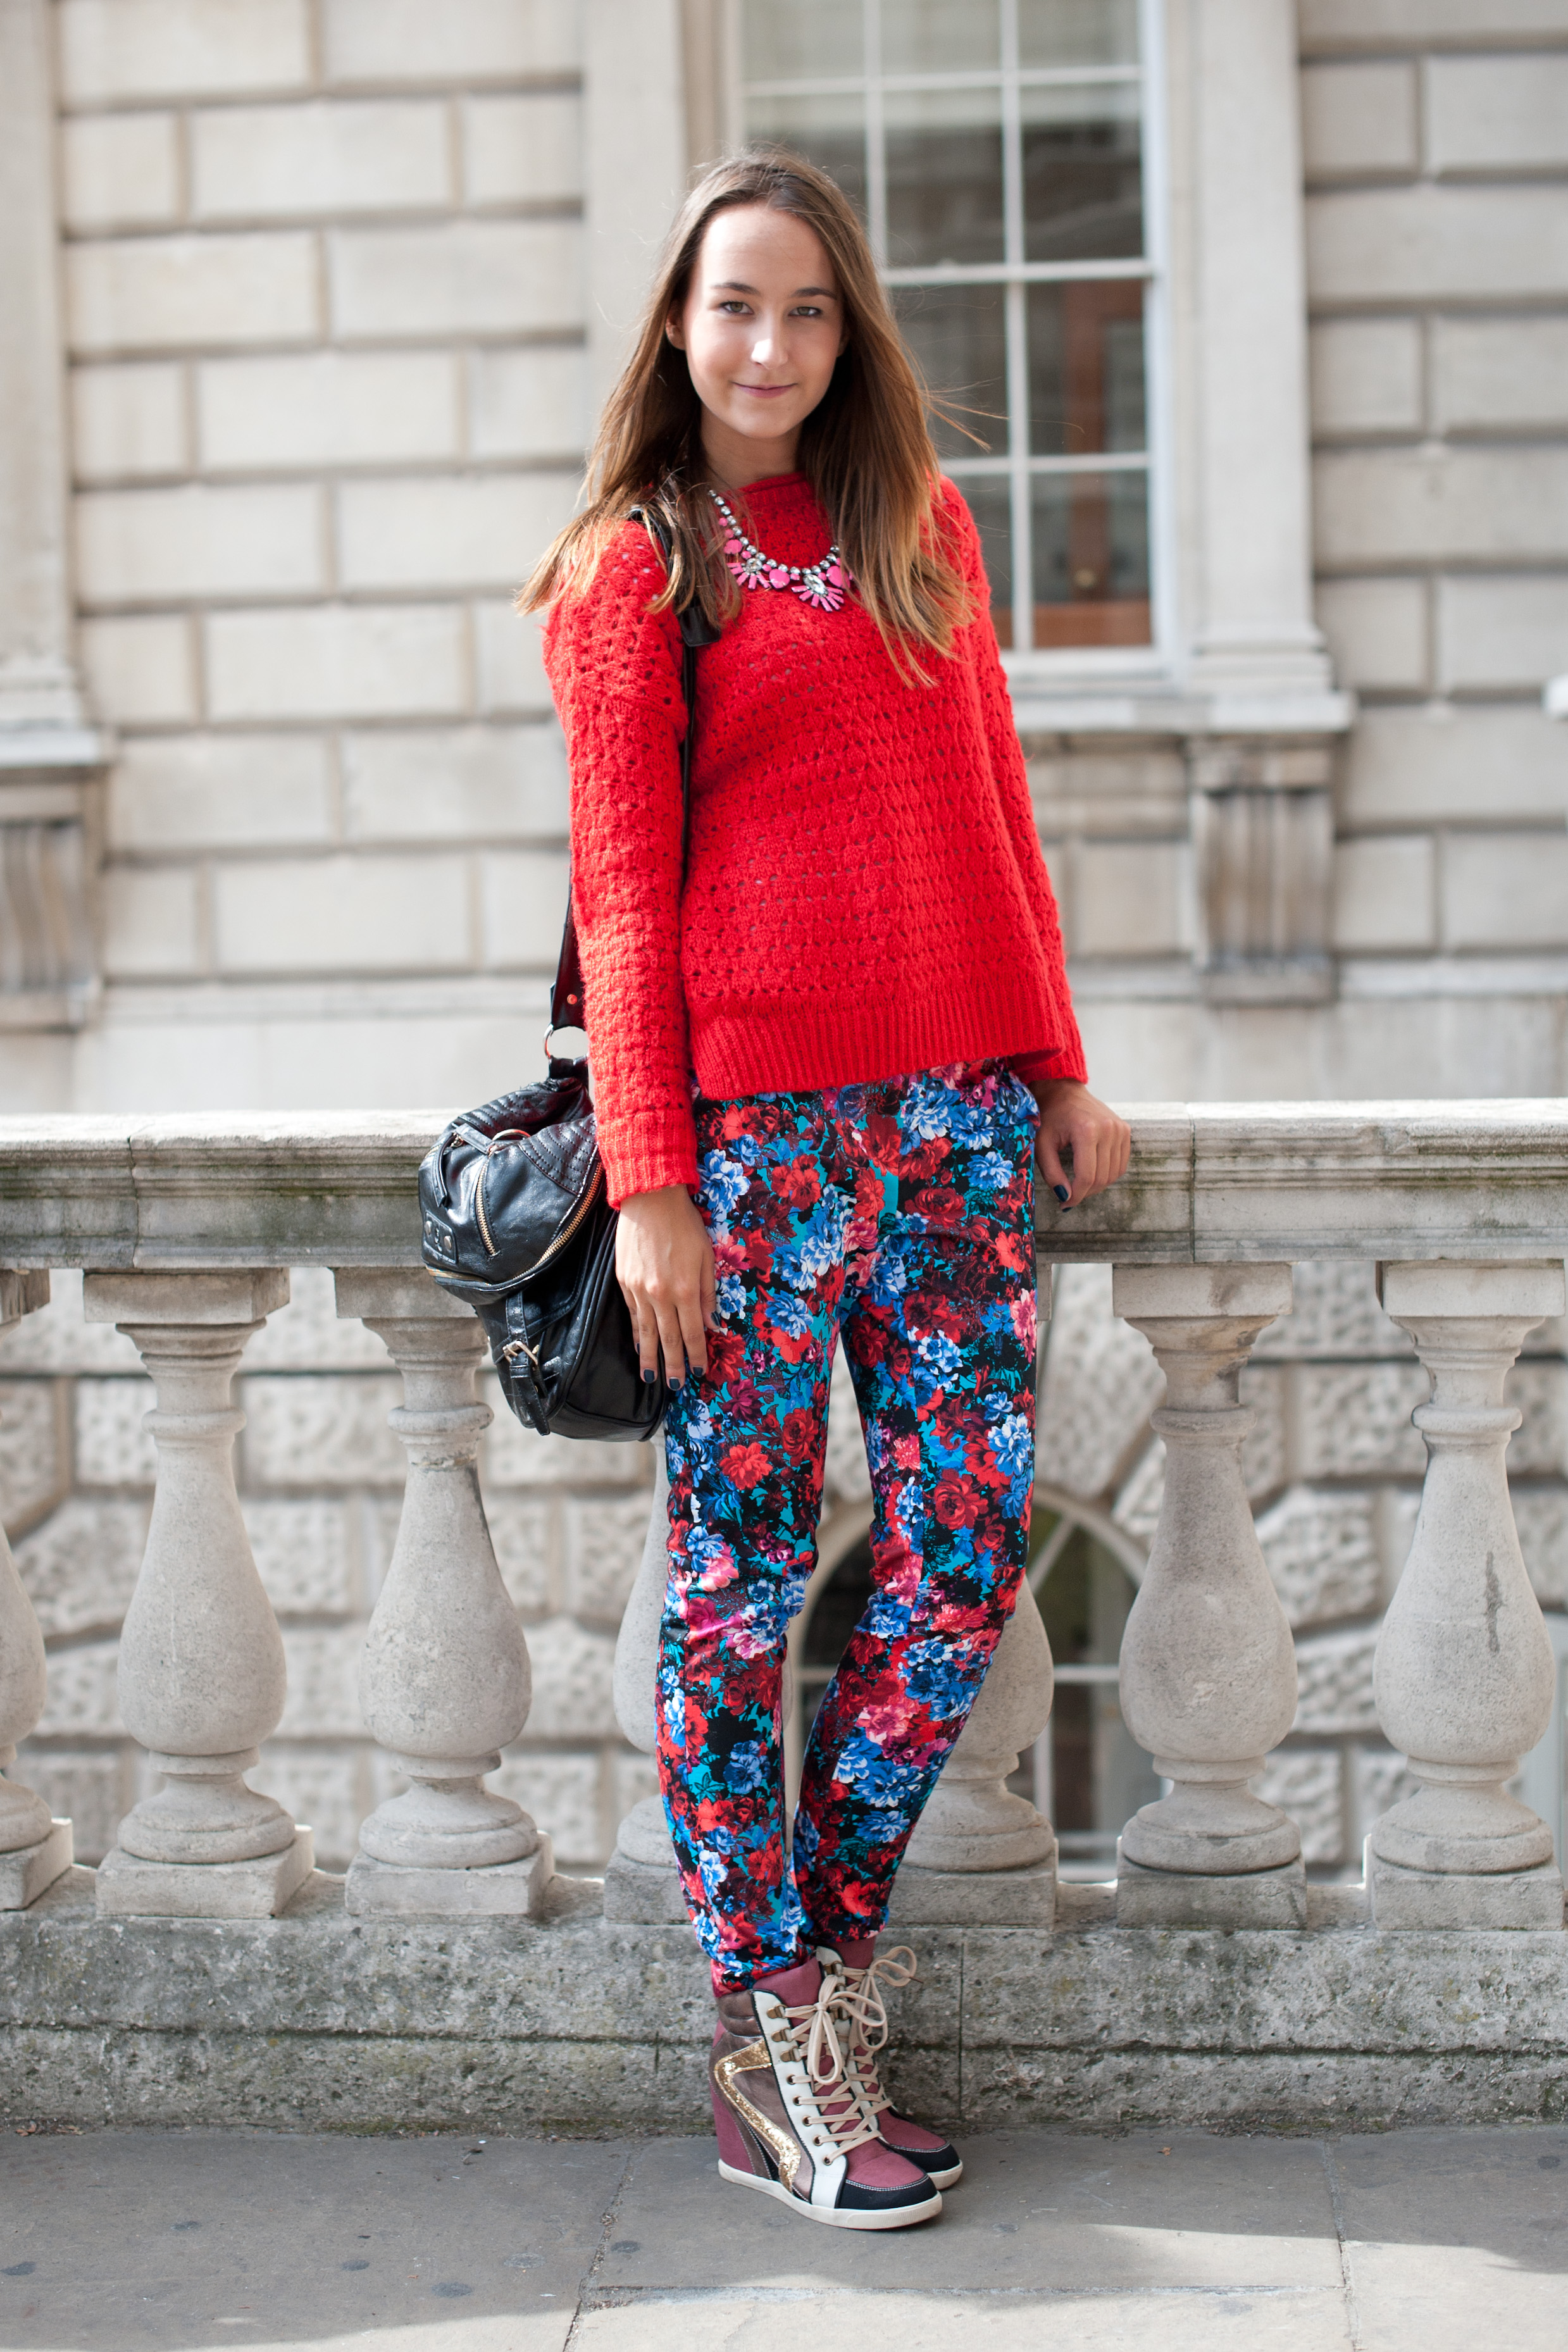 Wearing head-to-toe New Look (a British high street retailer), we're obsessed with her youthful mix of floral trousers, wedge sneakers, and statement jewelry.